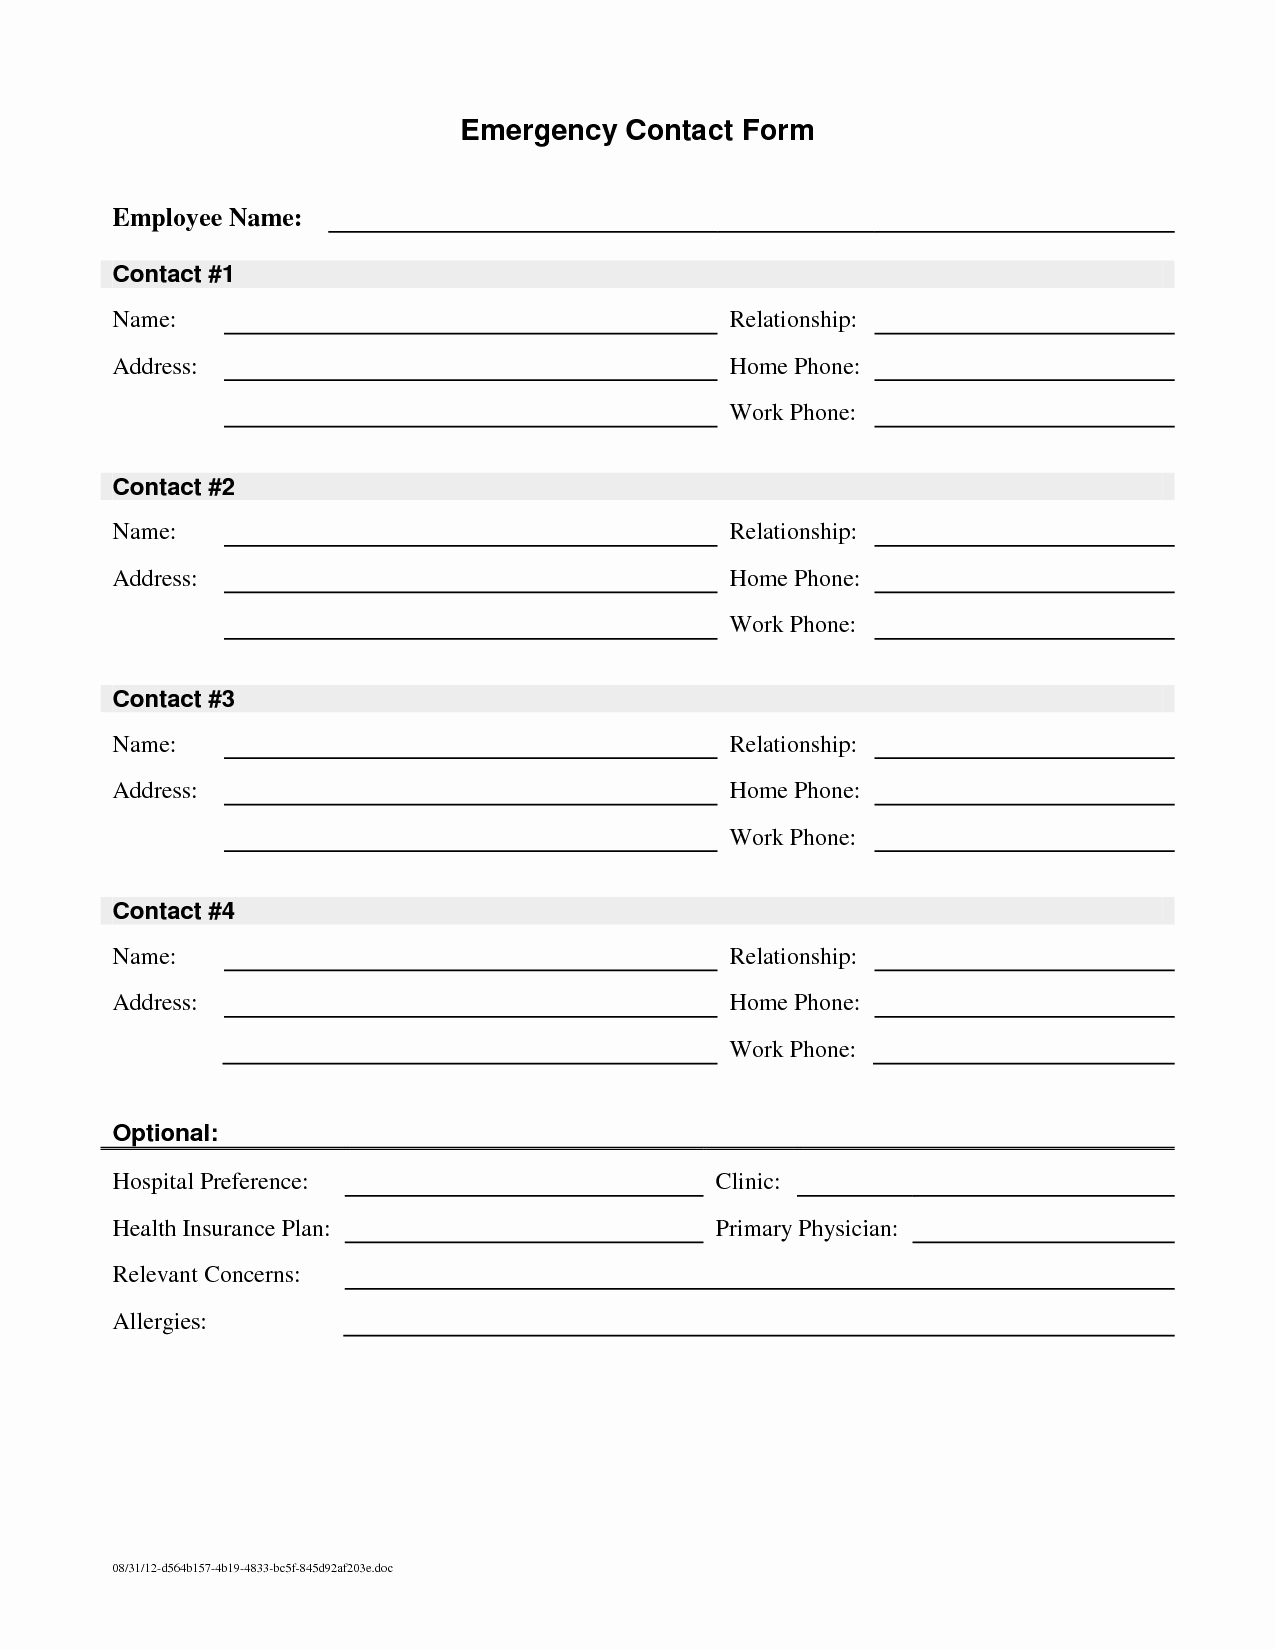 Employee Emergency Contact form Template Luxury Employee Emergency Contact Printable form to Pin